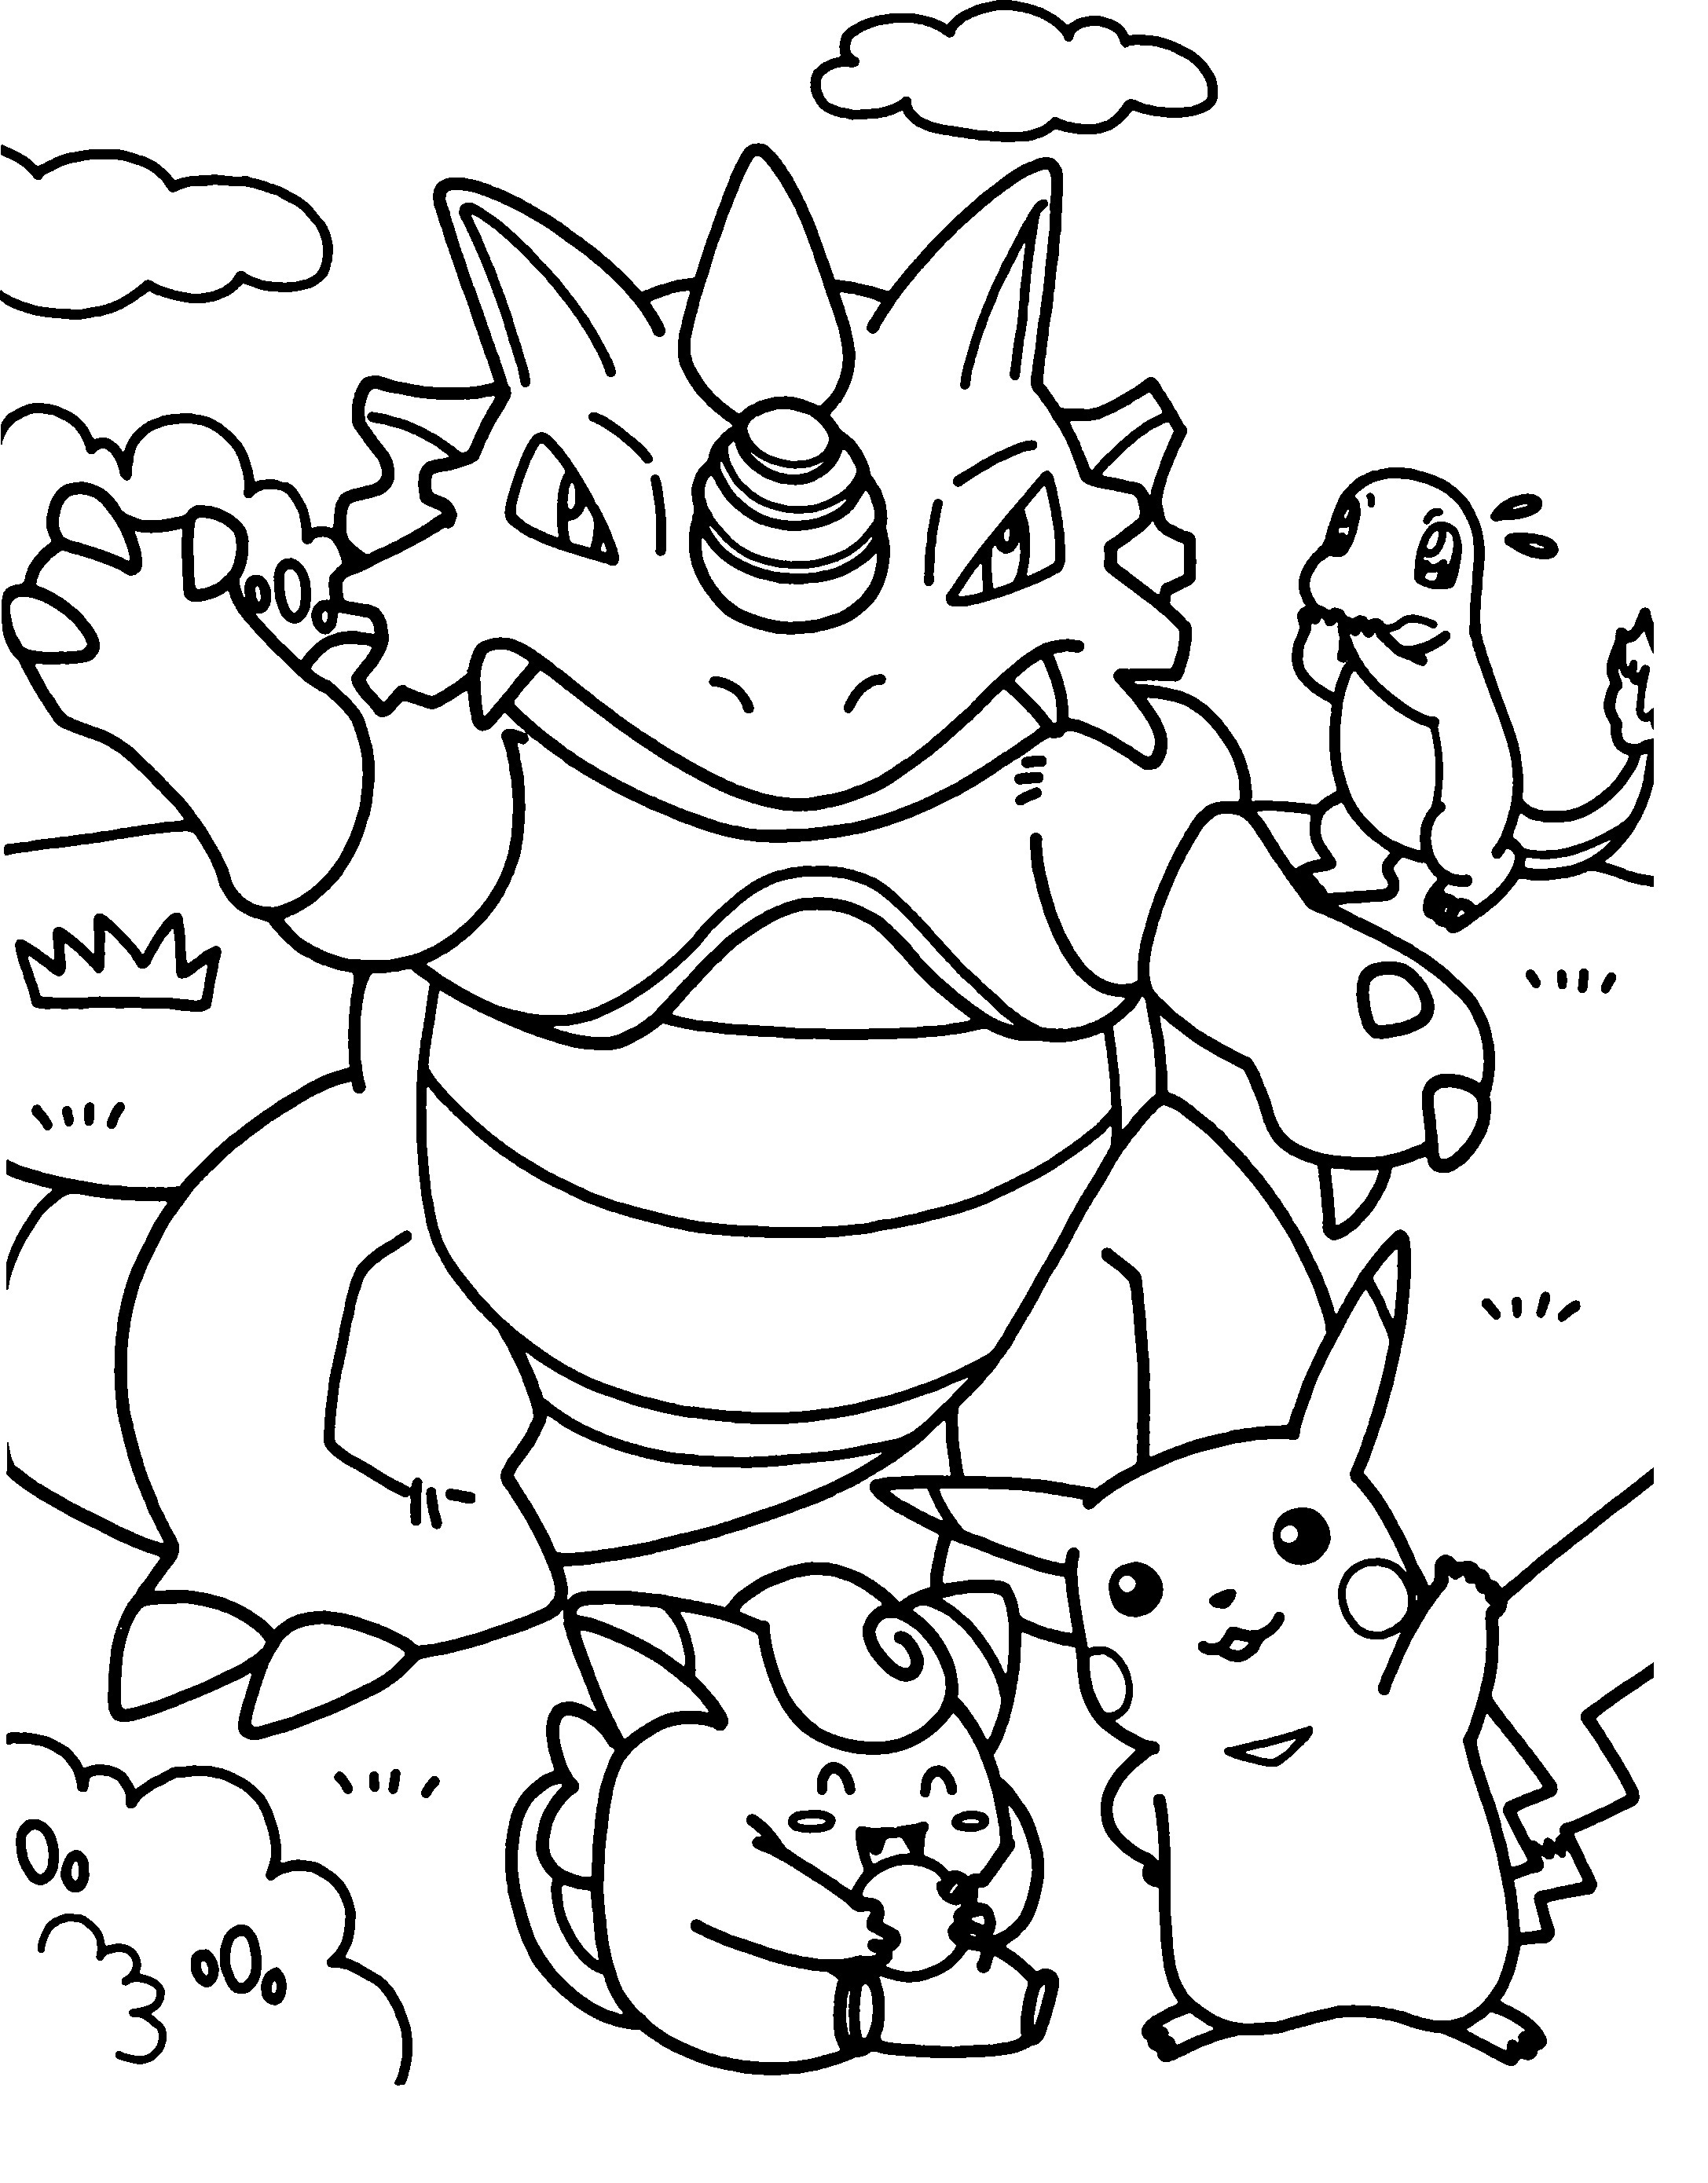 Pokemon-Coloring-Pages-for-Kids-Printable Leprechaun Coloring Pages